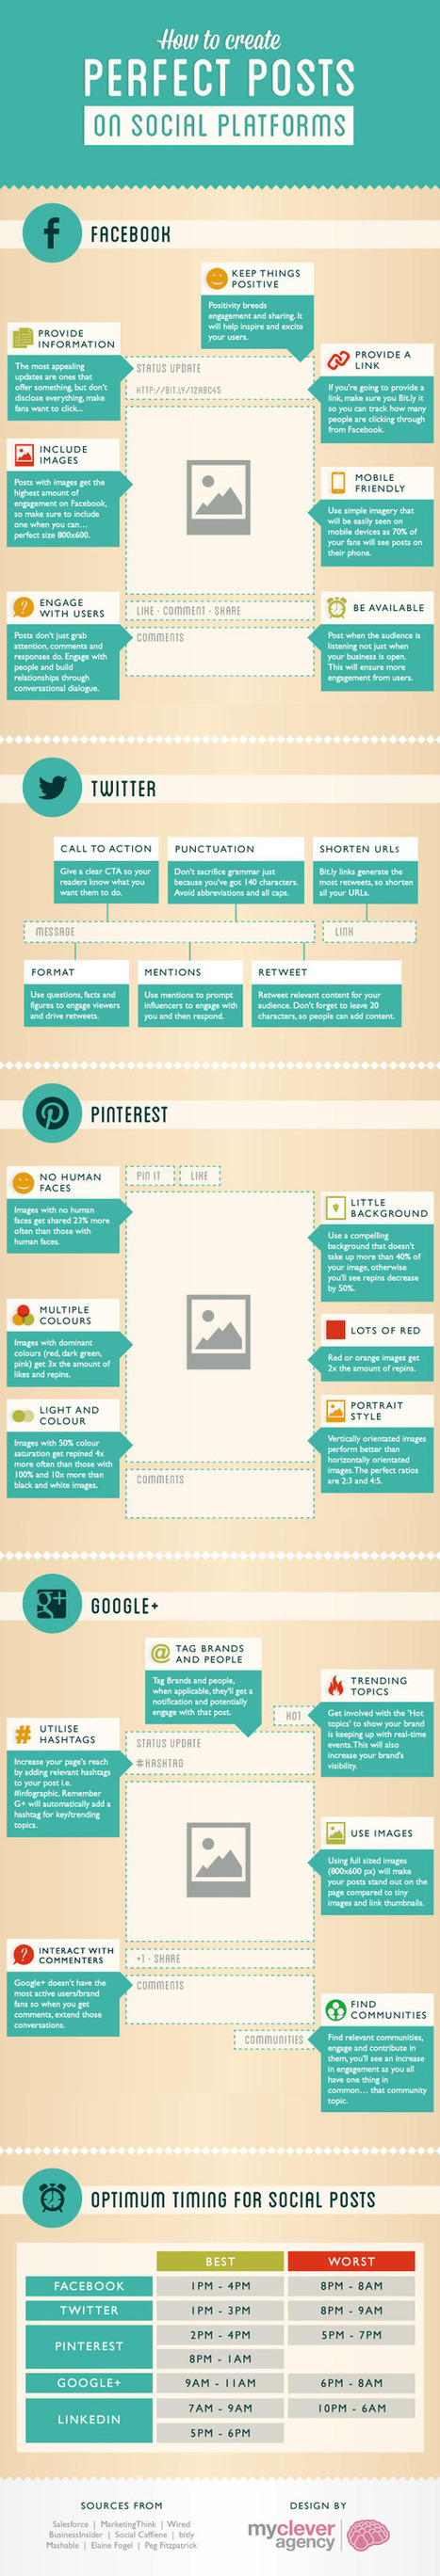 How To Create Perfect Post On Social Media | SocialMedia_me | Scoop.it